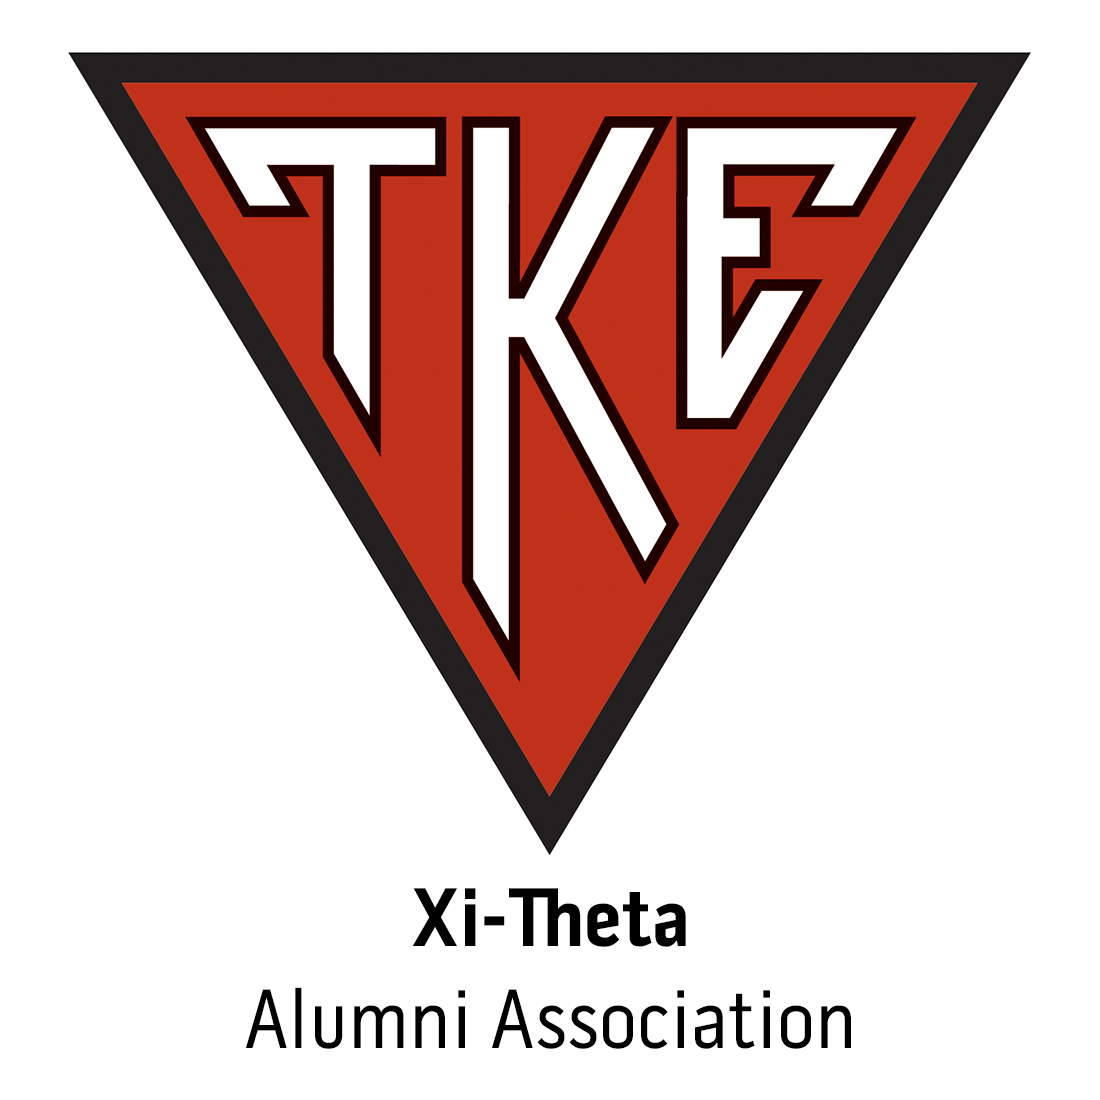 Xi-Theta Alumni Association Alumni at University of West Georgia